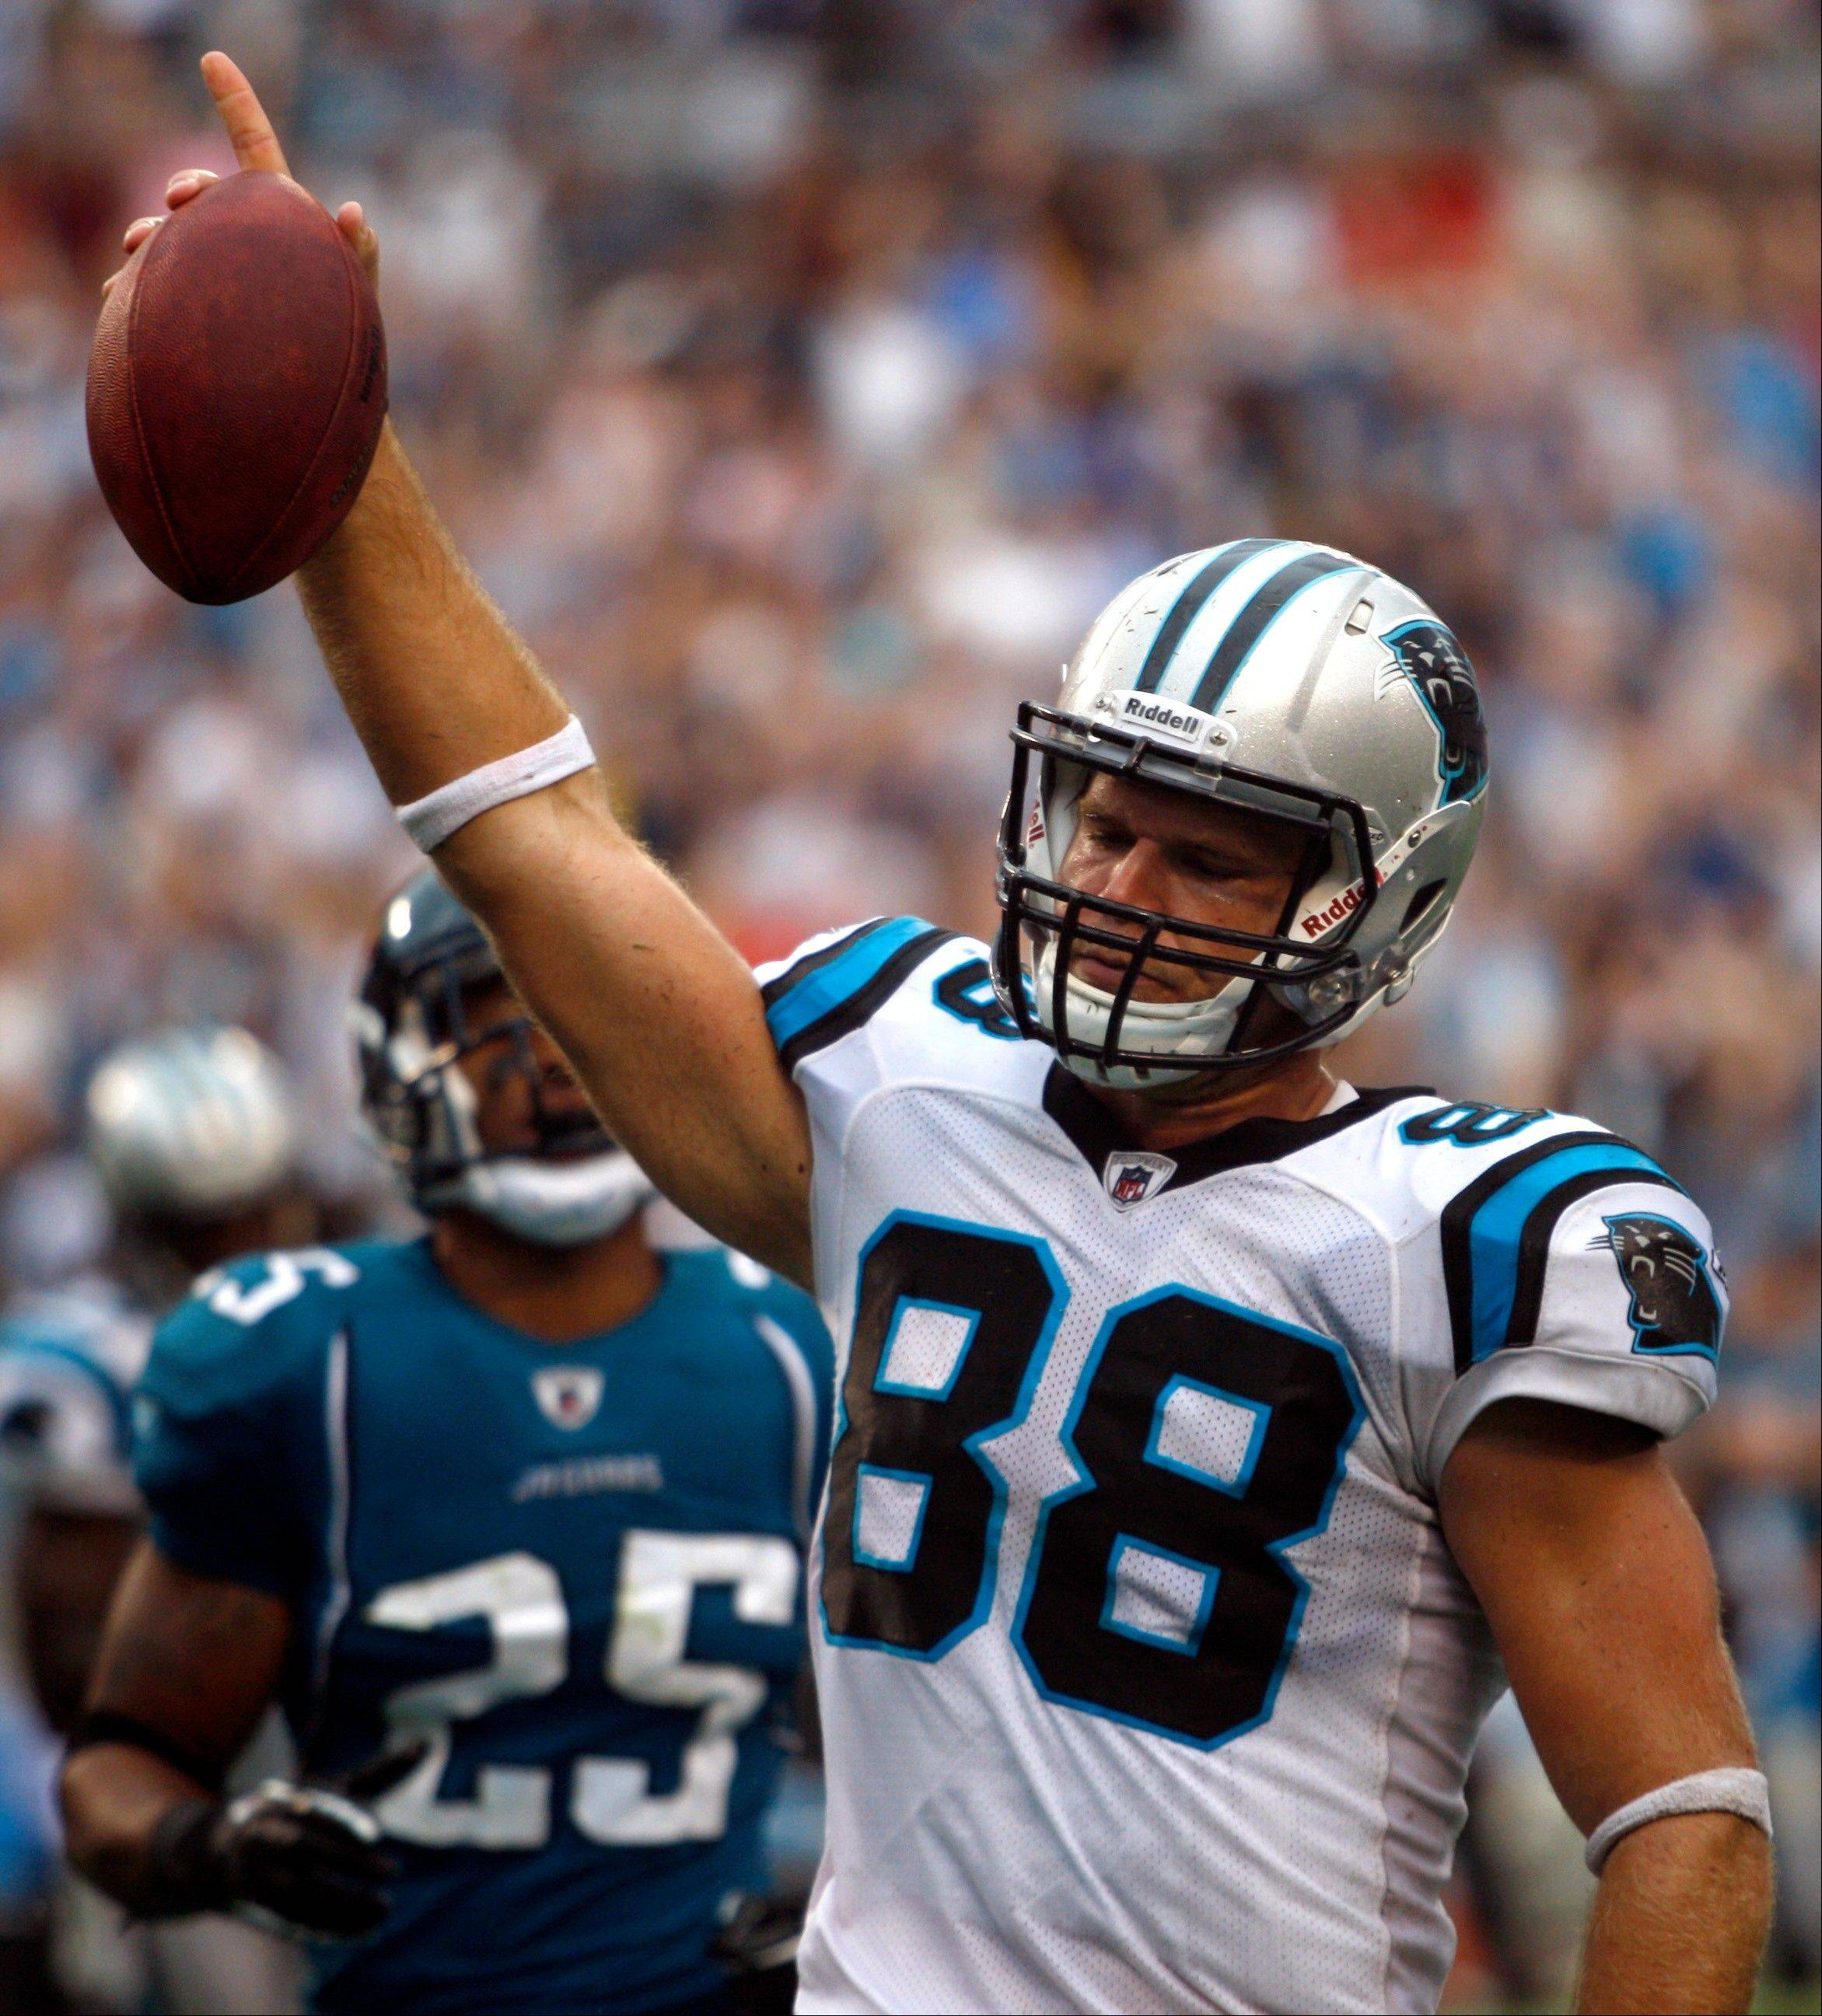 Carolina Panthers tight end Greg Olsen celebrates his touchdown catch against Jacksonville last week, which gave the team its first win of the season. Olsen will face the Bears, his former team, on Sunday at Soldier Field.